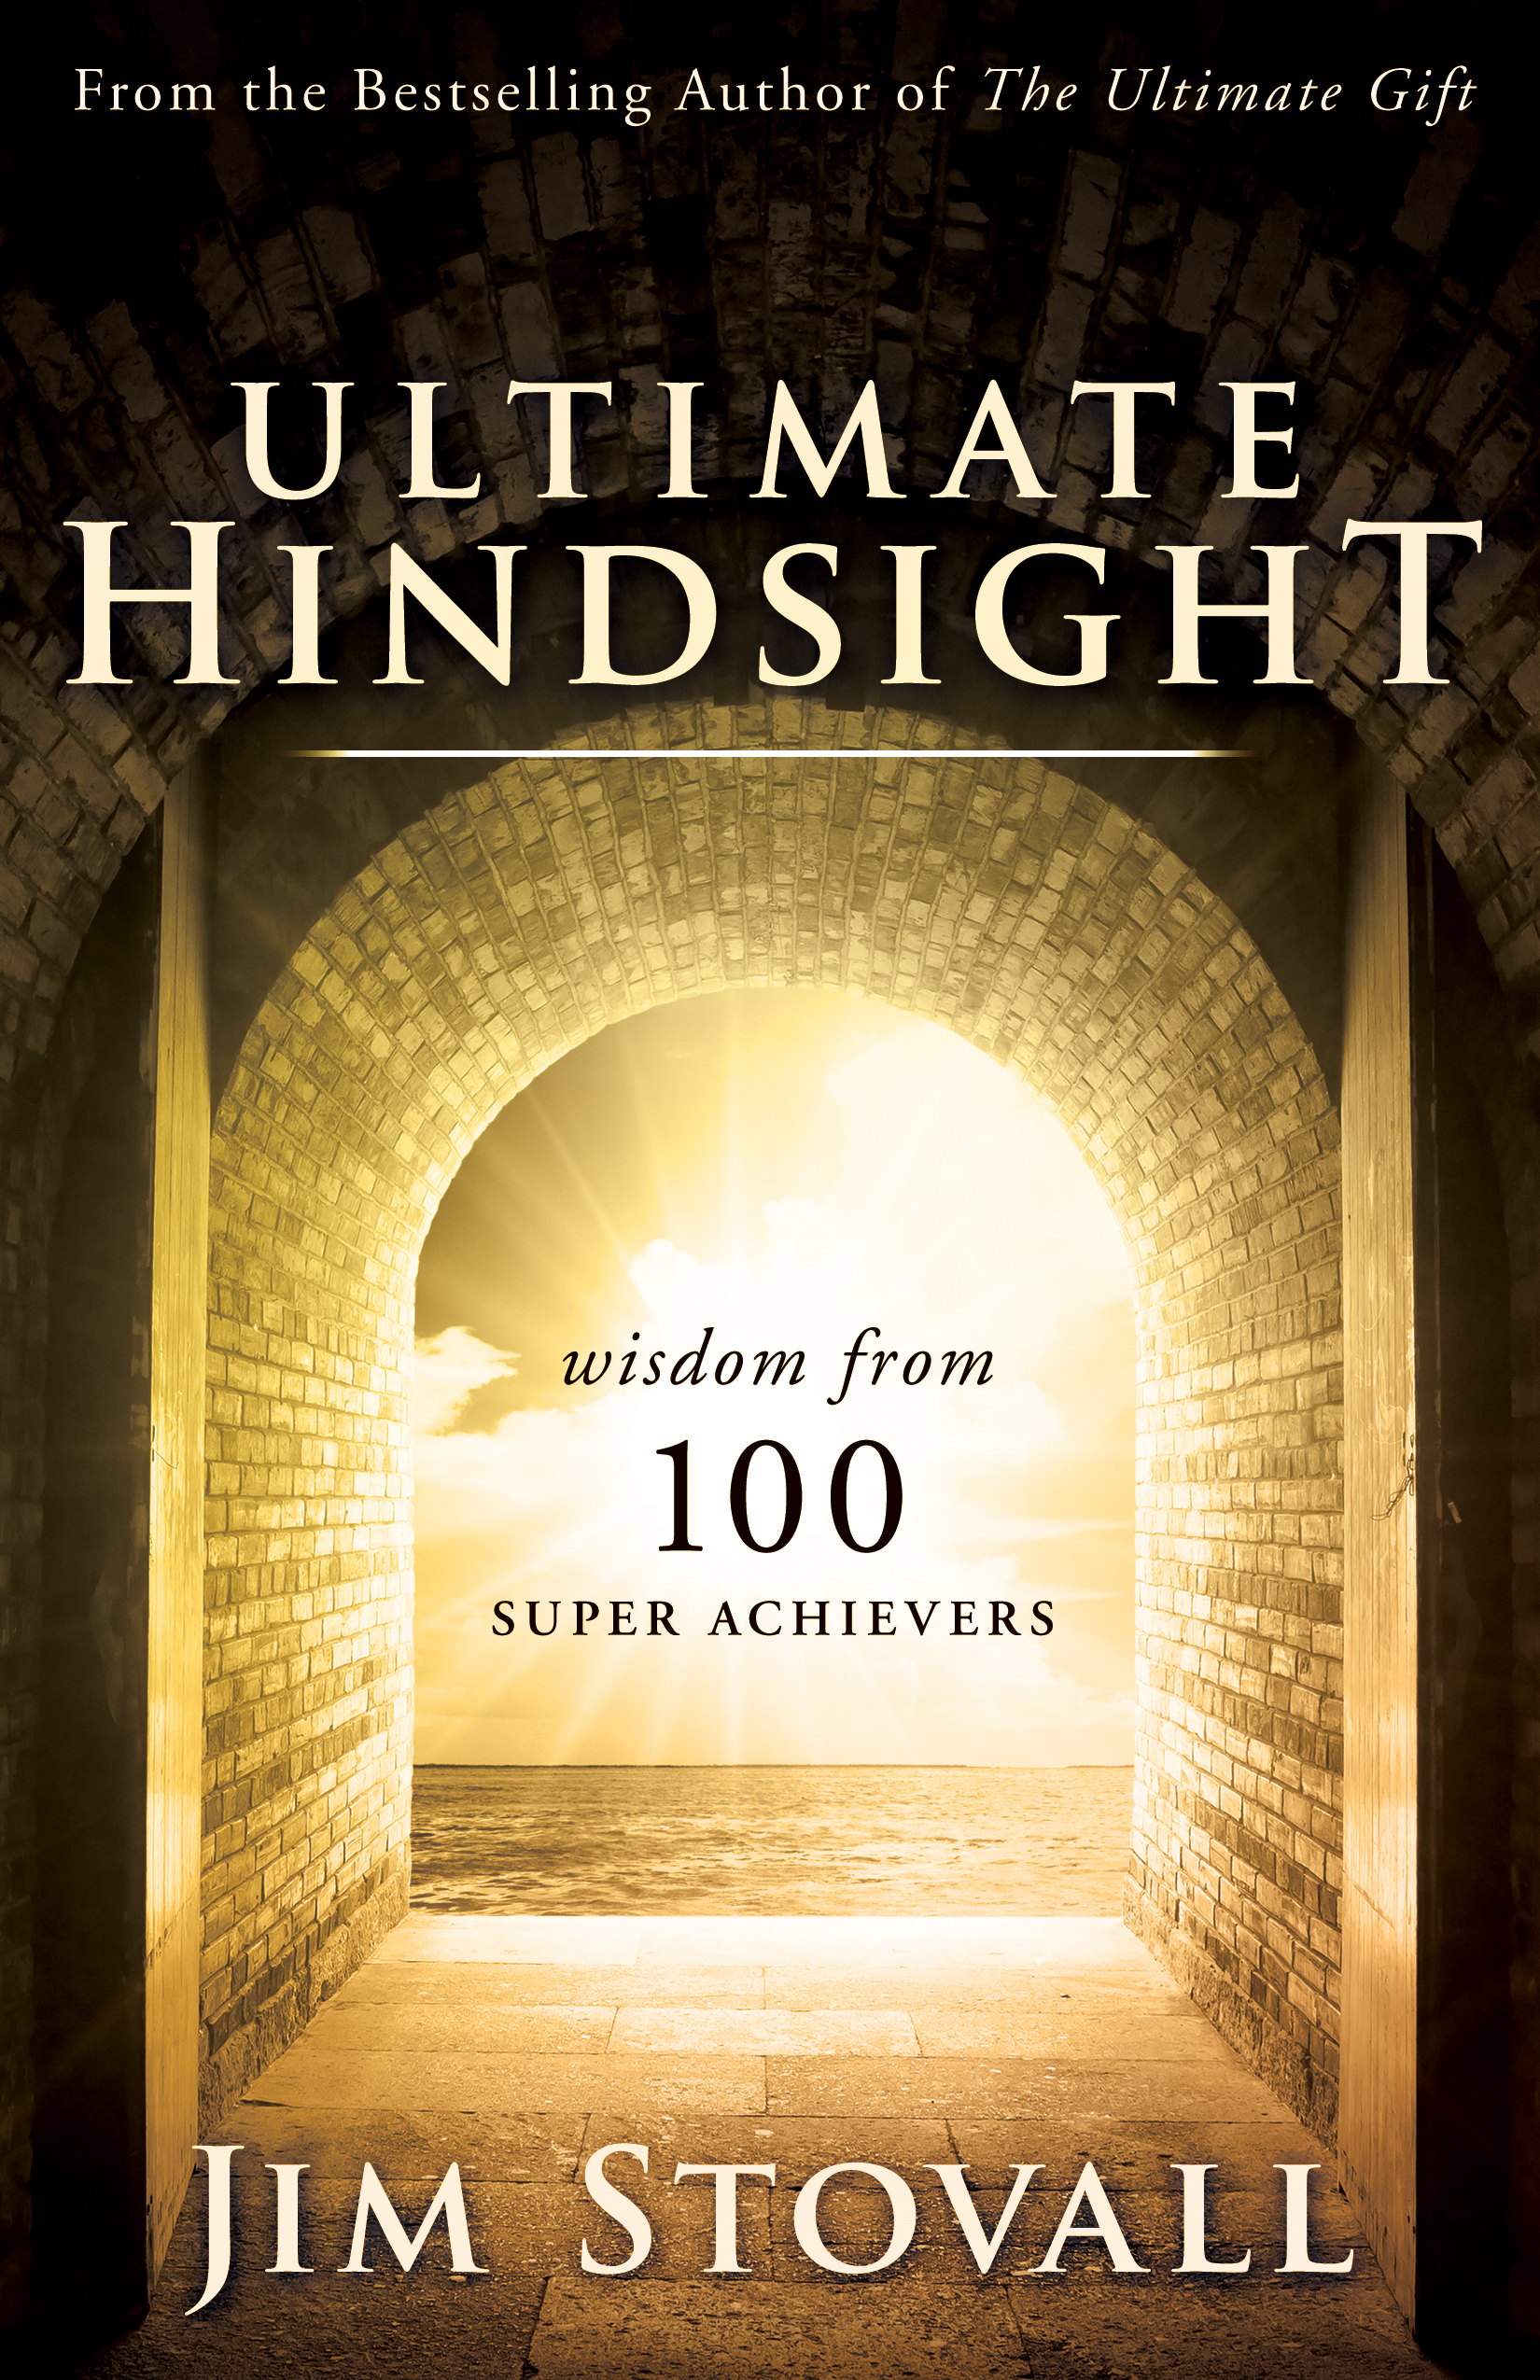 Ultimate Hindsight - By jim stovall